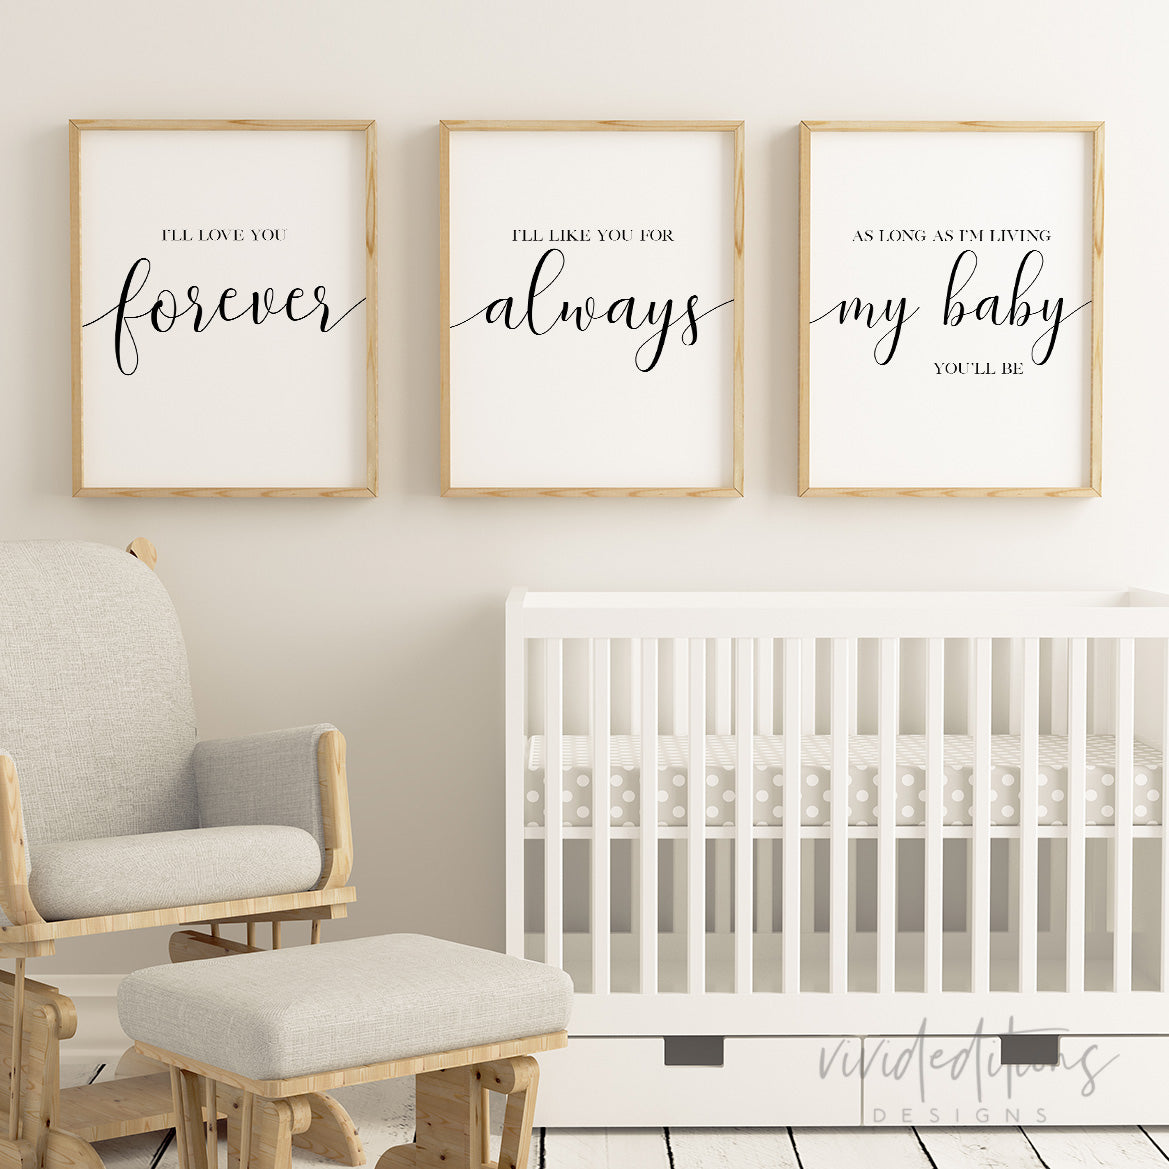 Love You Forever Nursery Quote Prints Set Of 3 Vivideditions